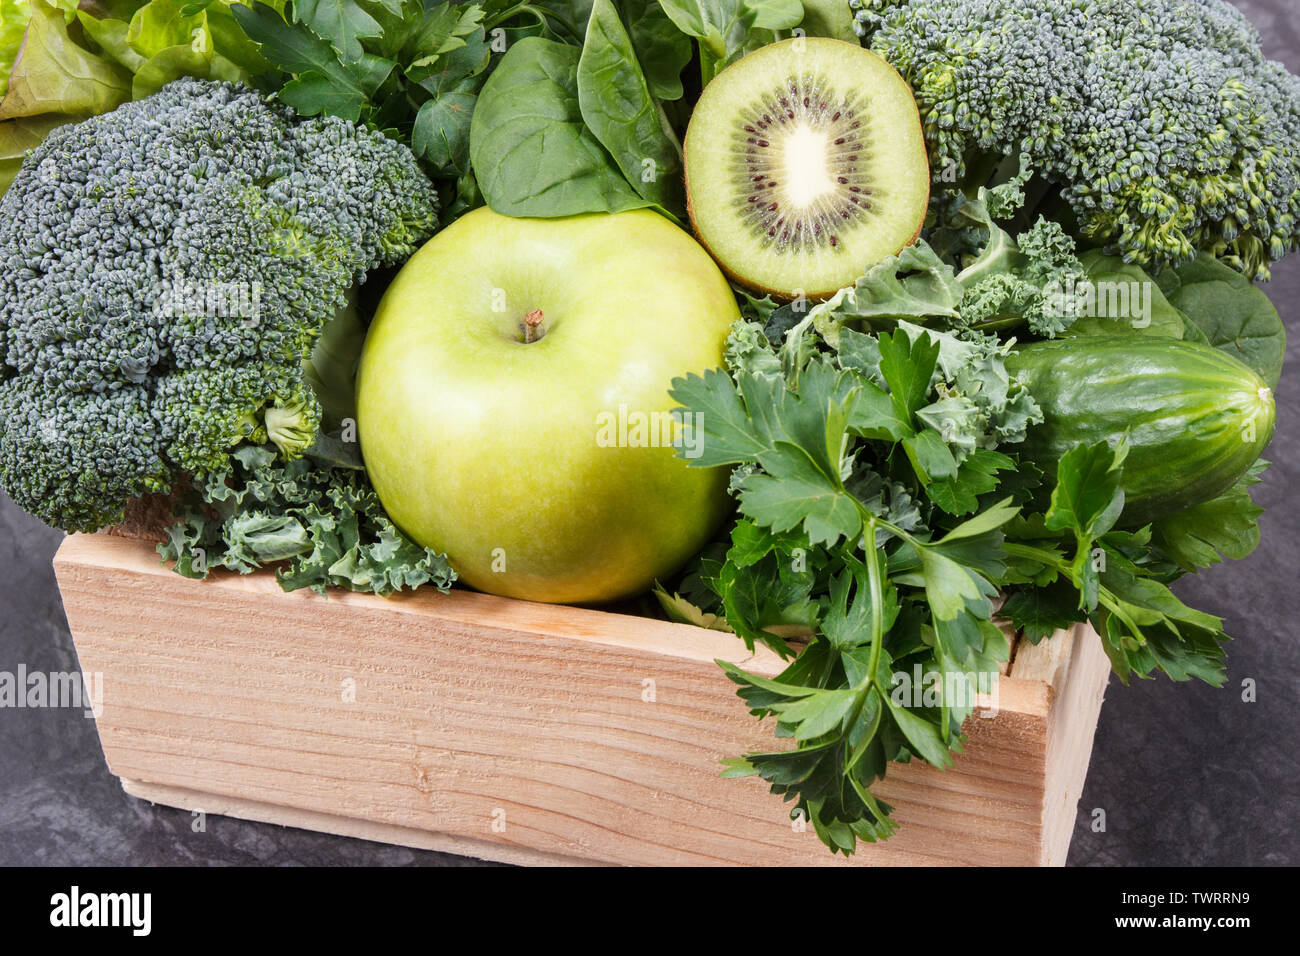 Fresh ripe green fruits with vegetables as healthy food containing natural vitamins or minerals. Body detox concept - Stock Image